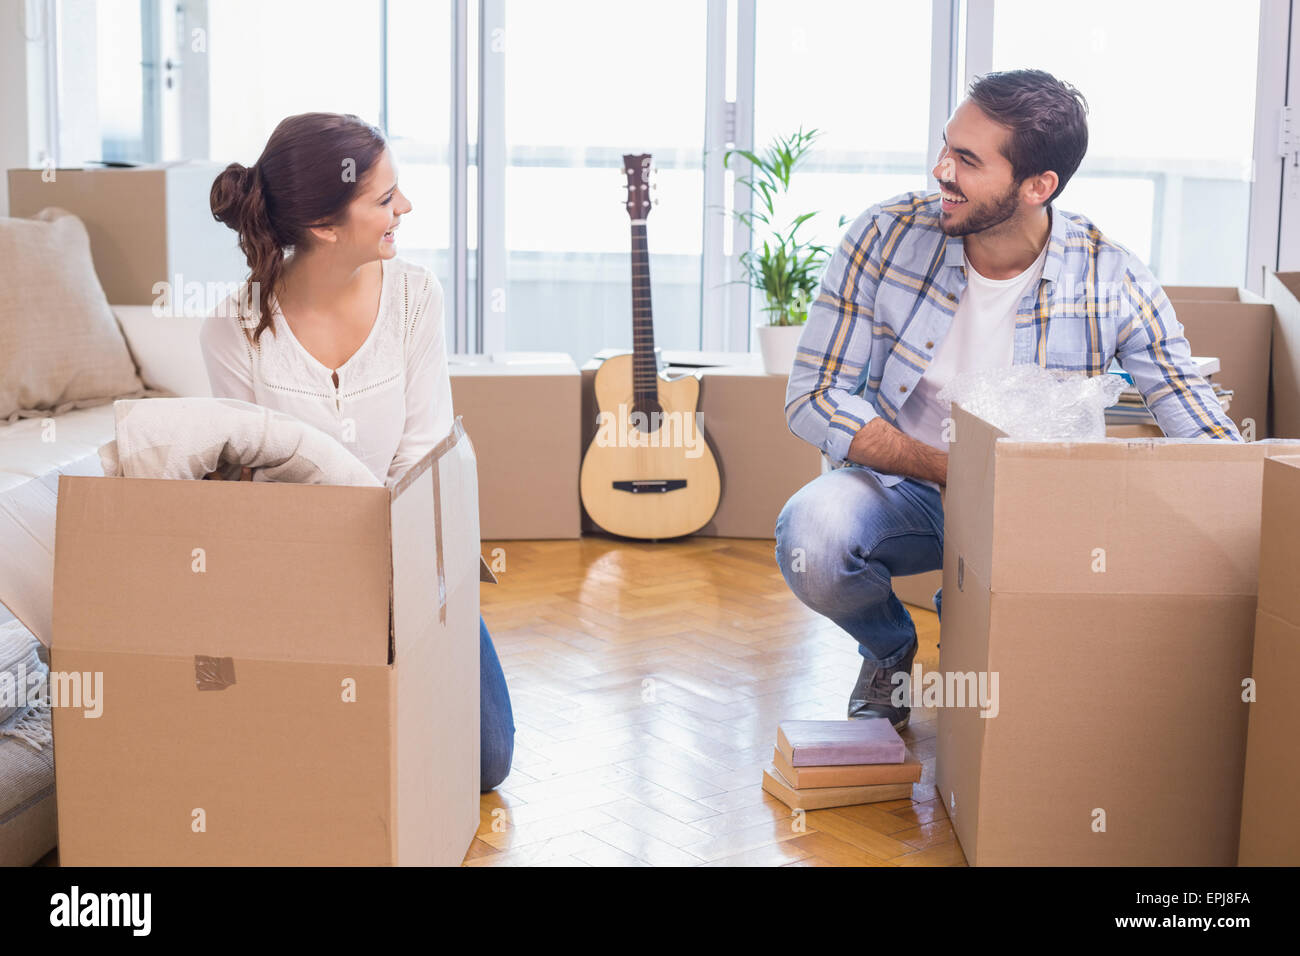 Cute couple unpacking cardboard boxes - Stock Image